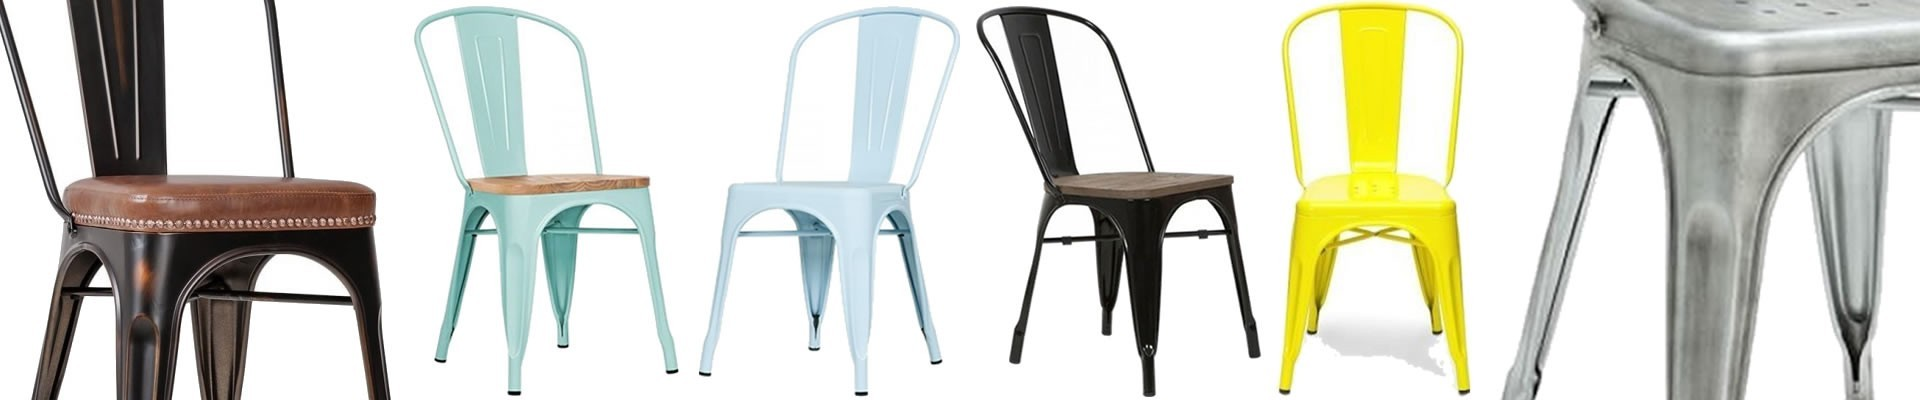 Metal Chairs | Metal Dining Chairs